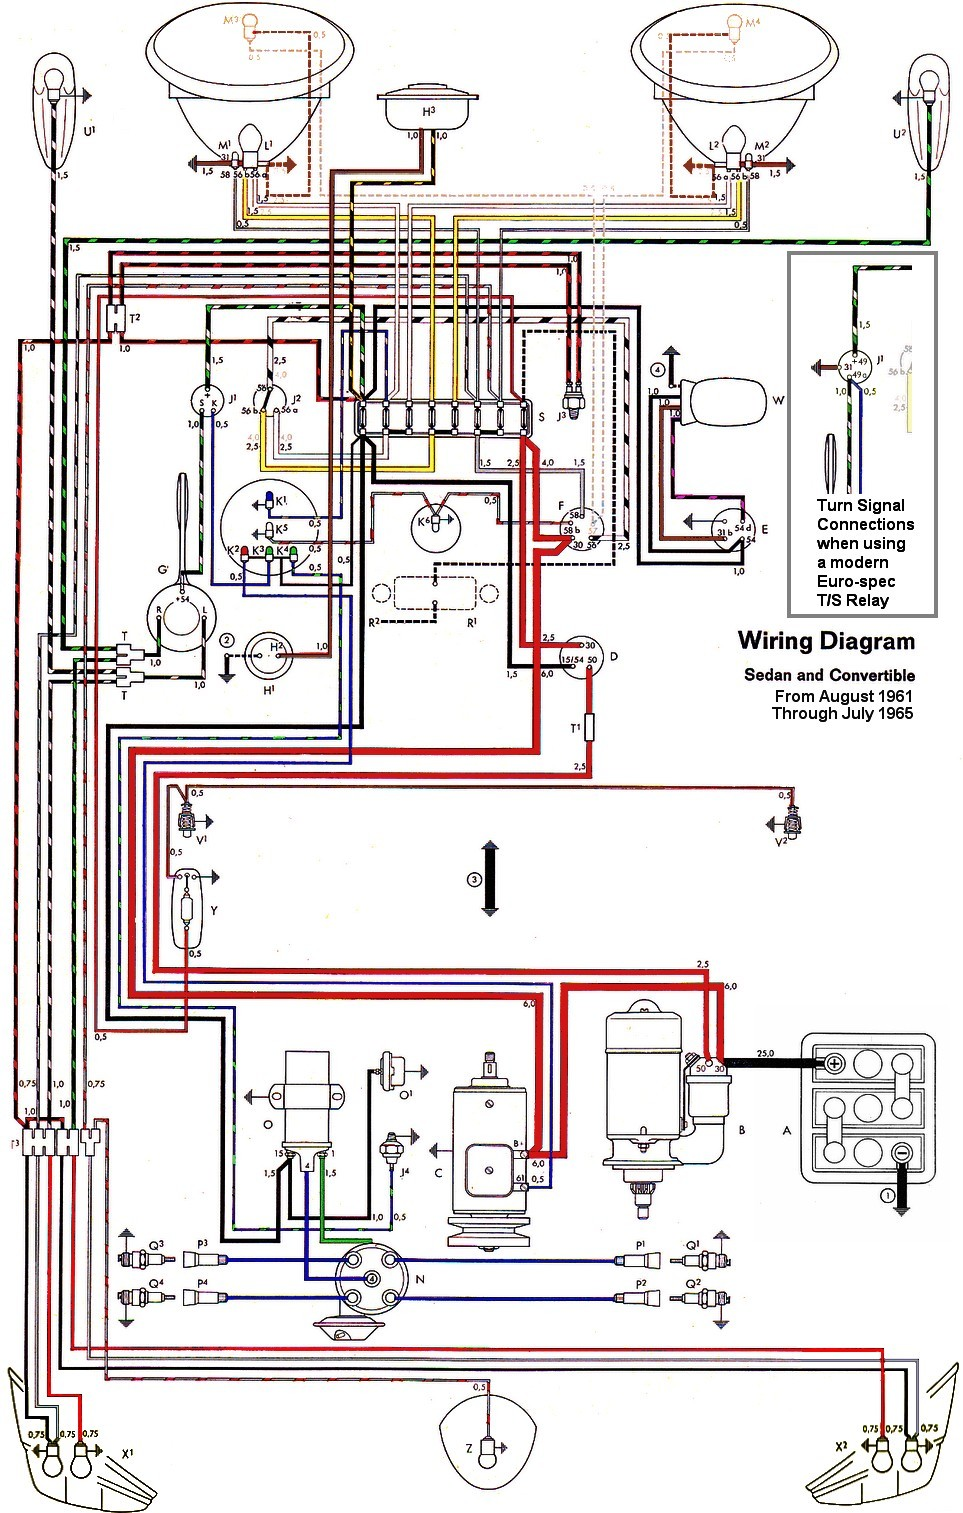 hight resolution of 1970 vw wiring diagram wiring schematics diagram rh mychampagnedaze com vw beetle alternator wiring vw alternator